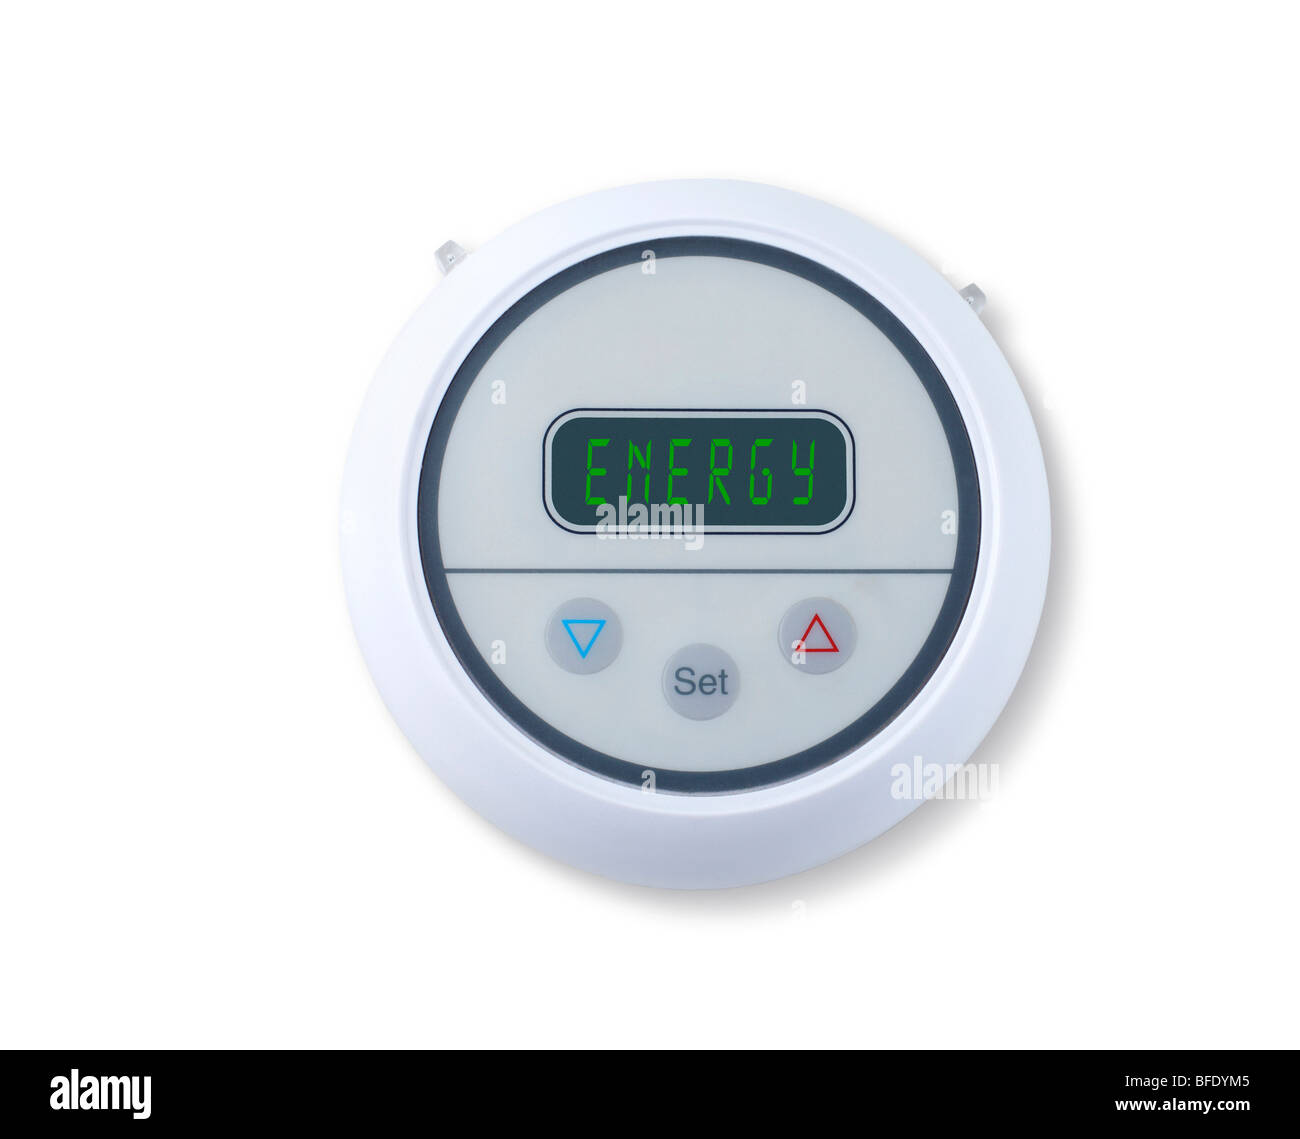 Digital wall thermostat indicating energy - Stock Image